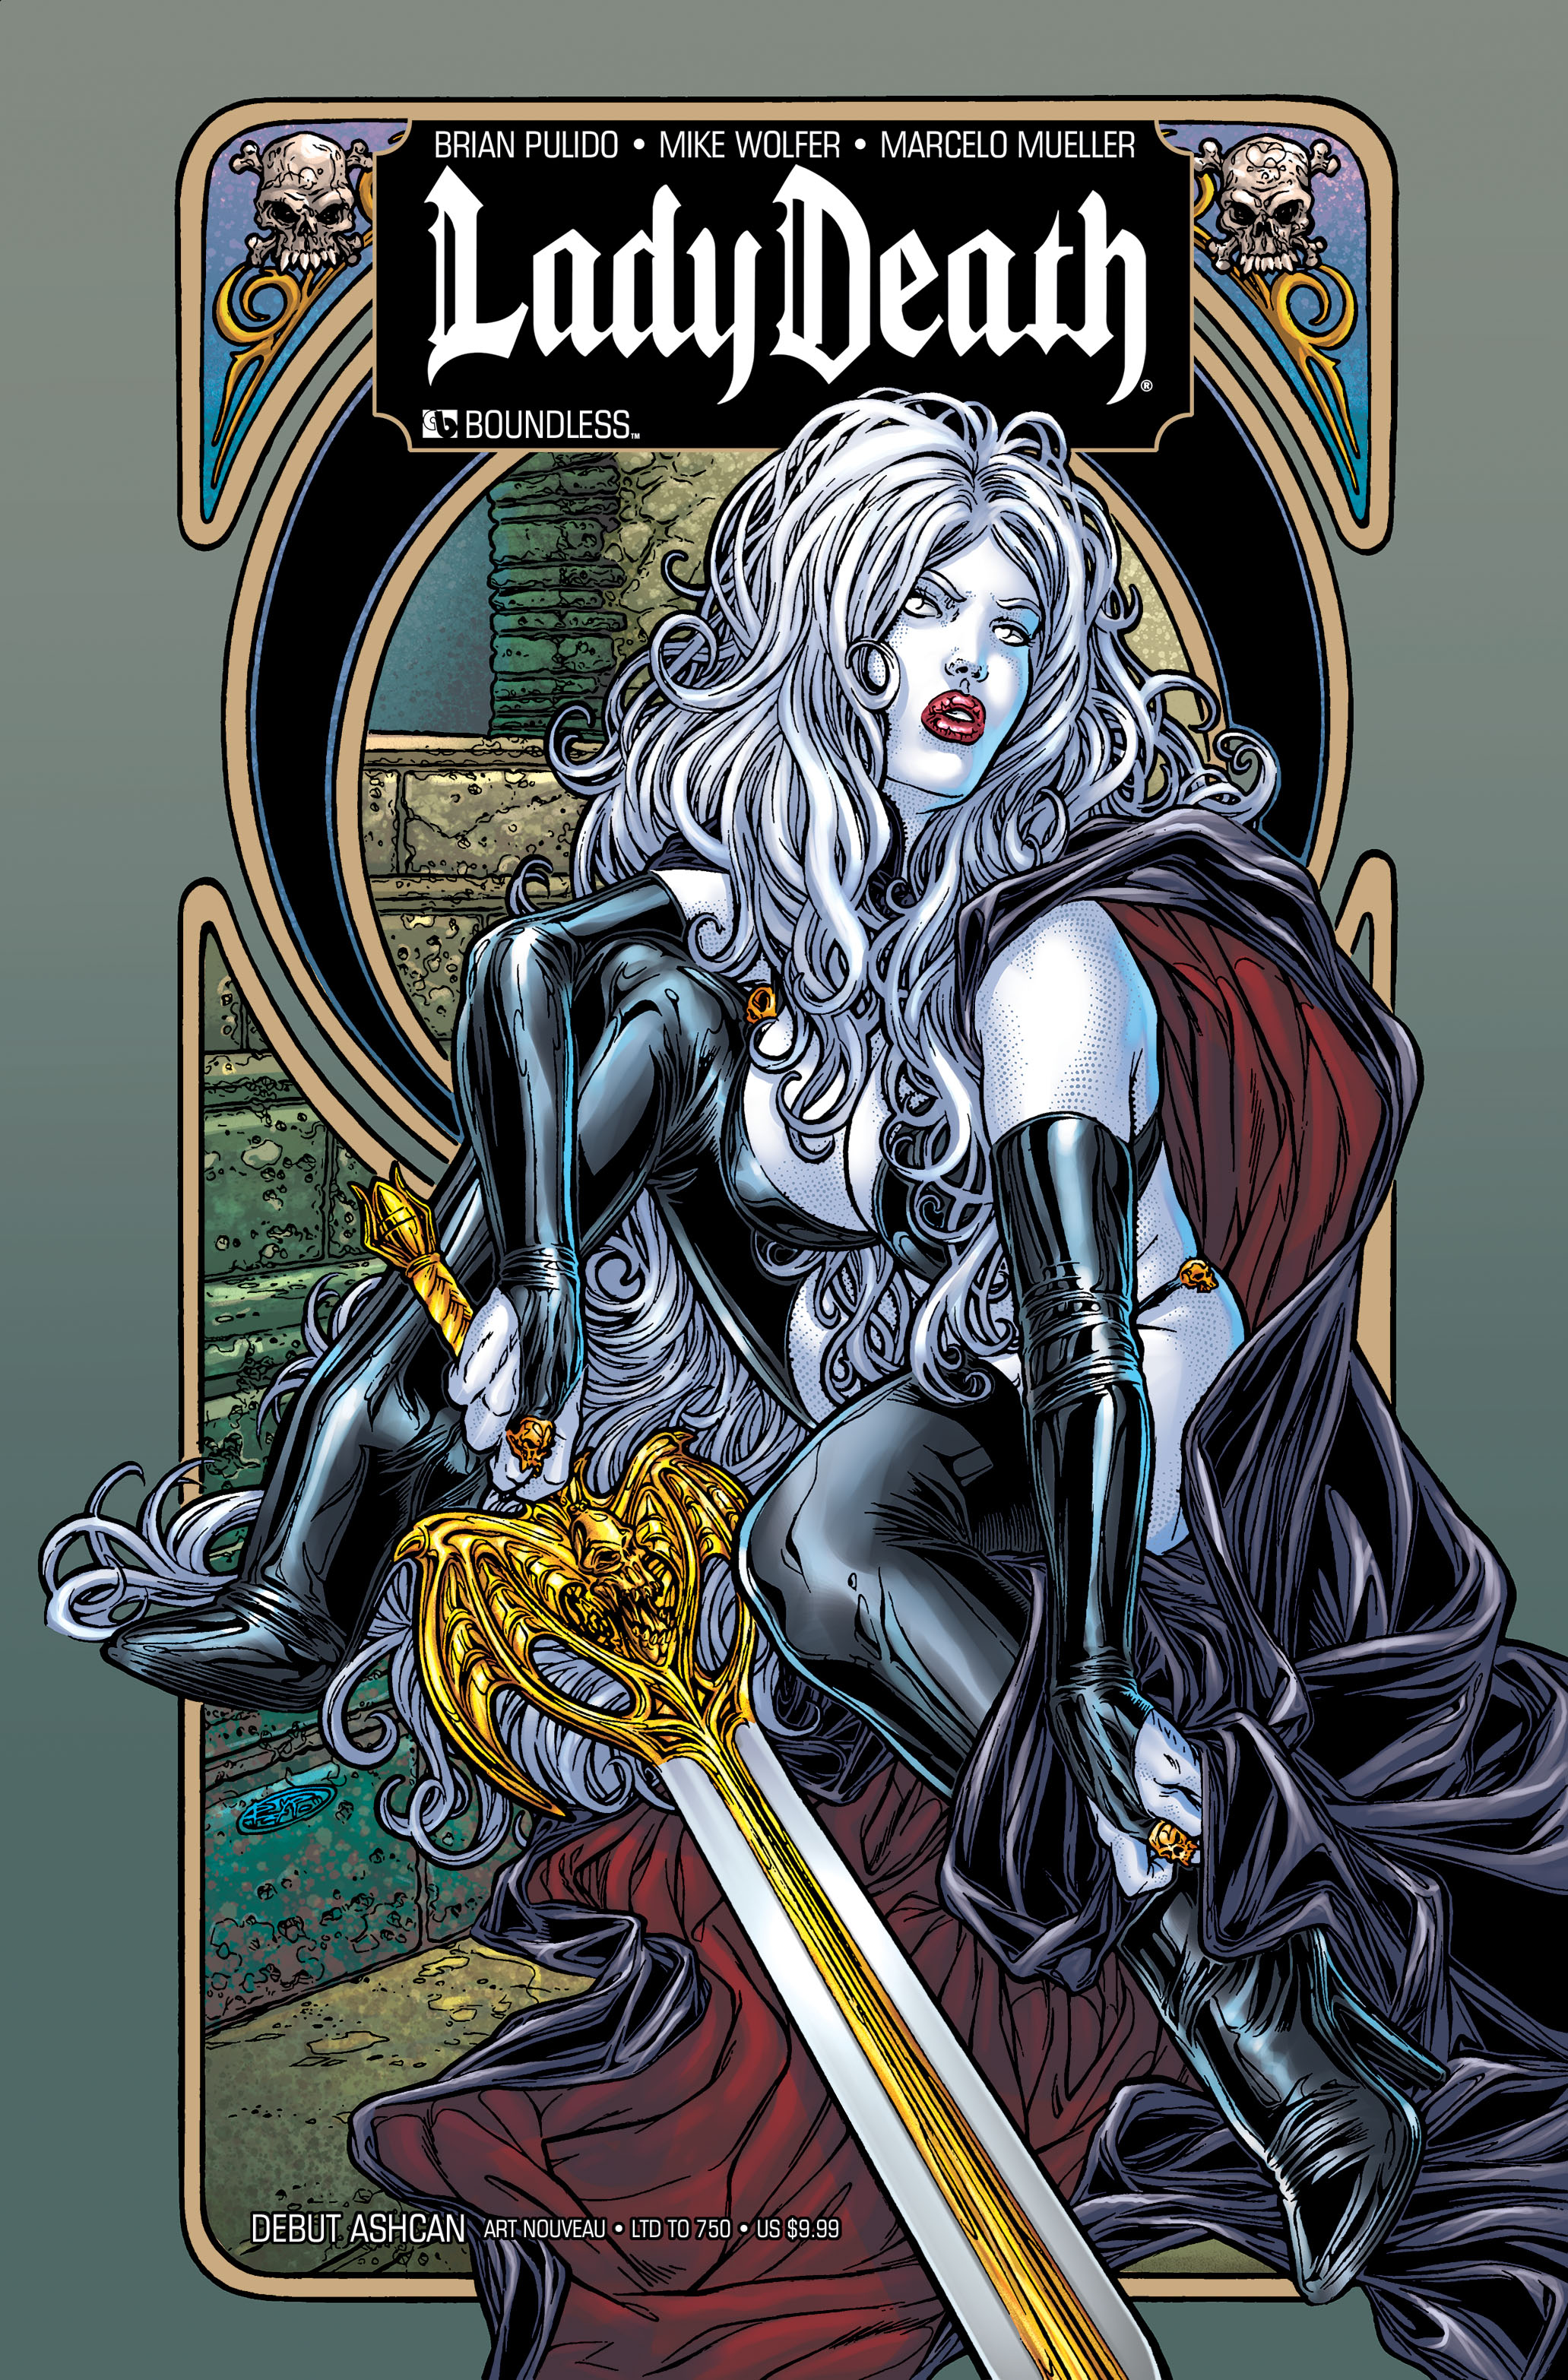 LADY DEATH DEBUT ASHCAN ART NOUVEAU (MR)